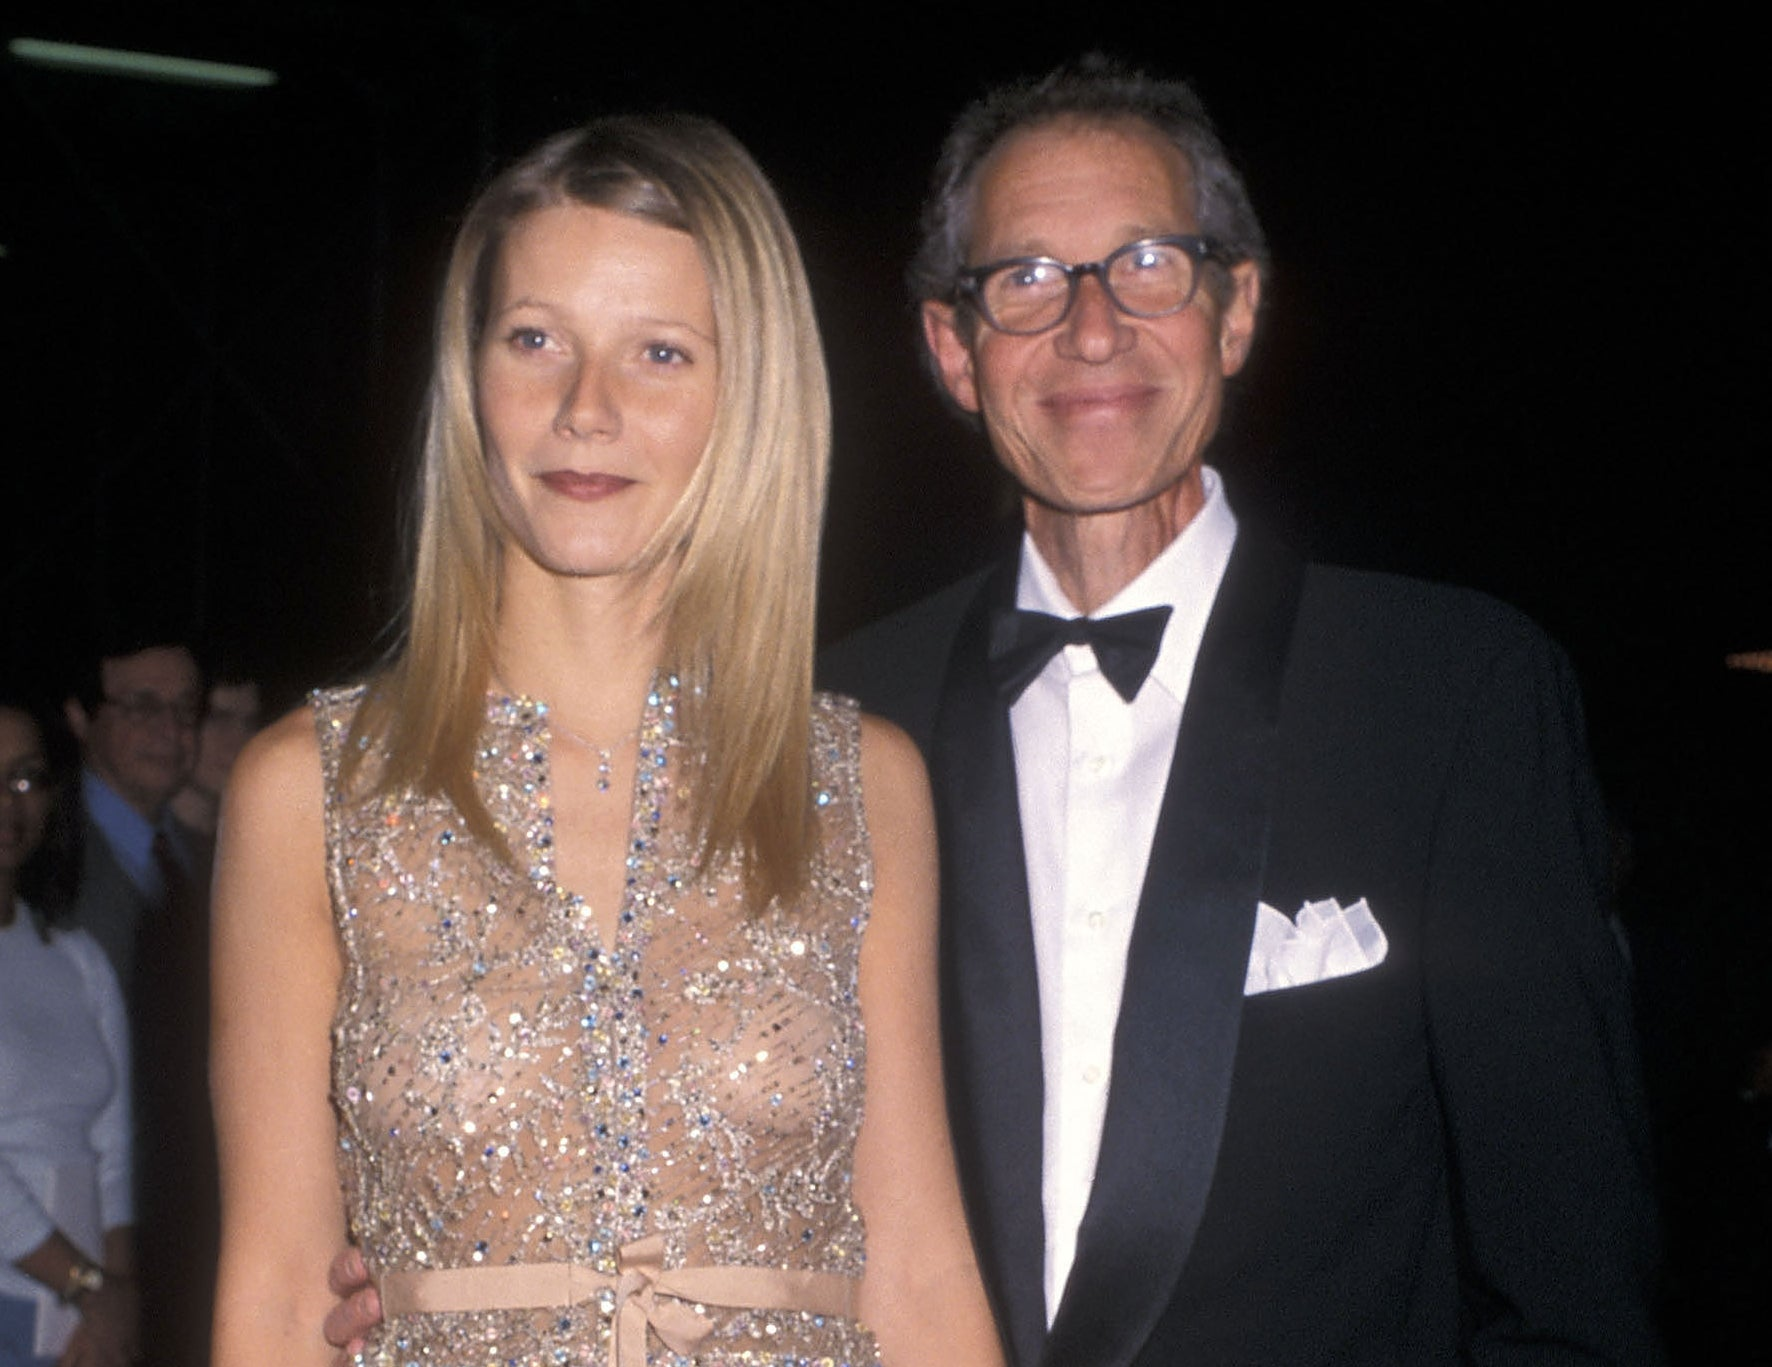 Gwyneth and her father before his passing